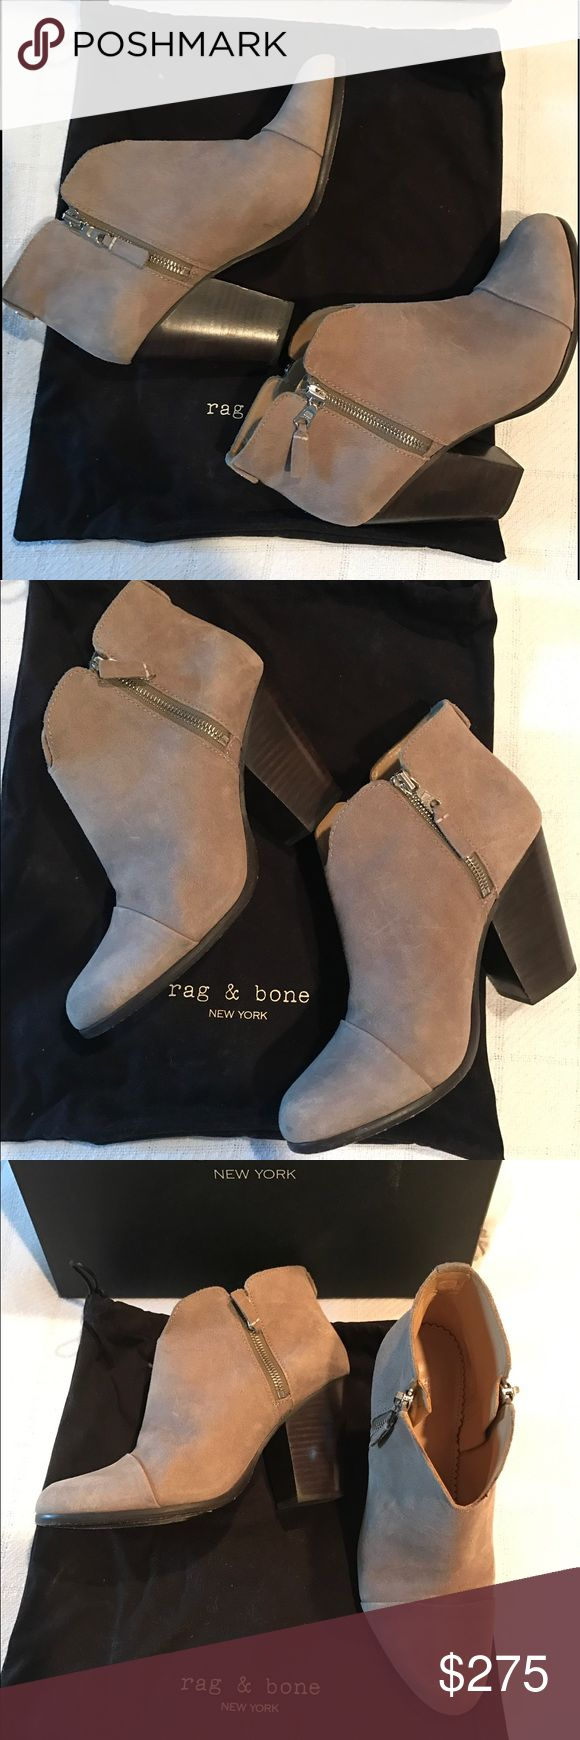 Rag & Bone Booties Women's size 8 MARGOT BOOT, side zip. I wore these prob about 5-7 times.  RAG & BONE! Color is Stone Waxy, comes with original box and dust bag. Rag & Bone Shoes Ankle Boots & Booties